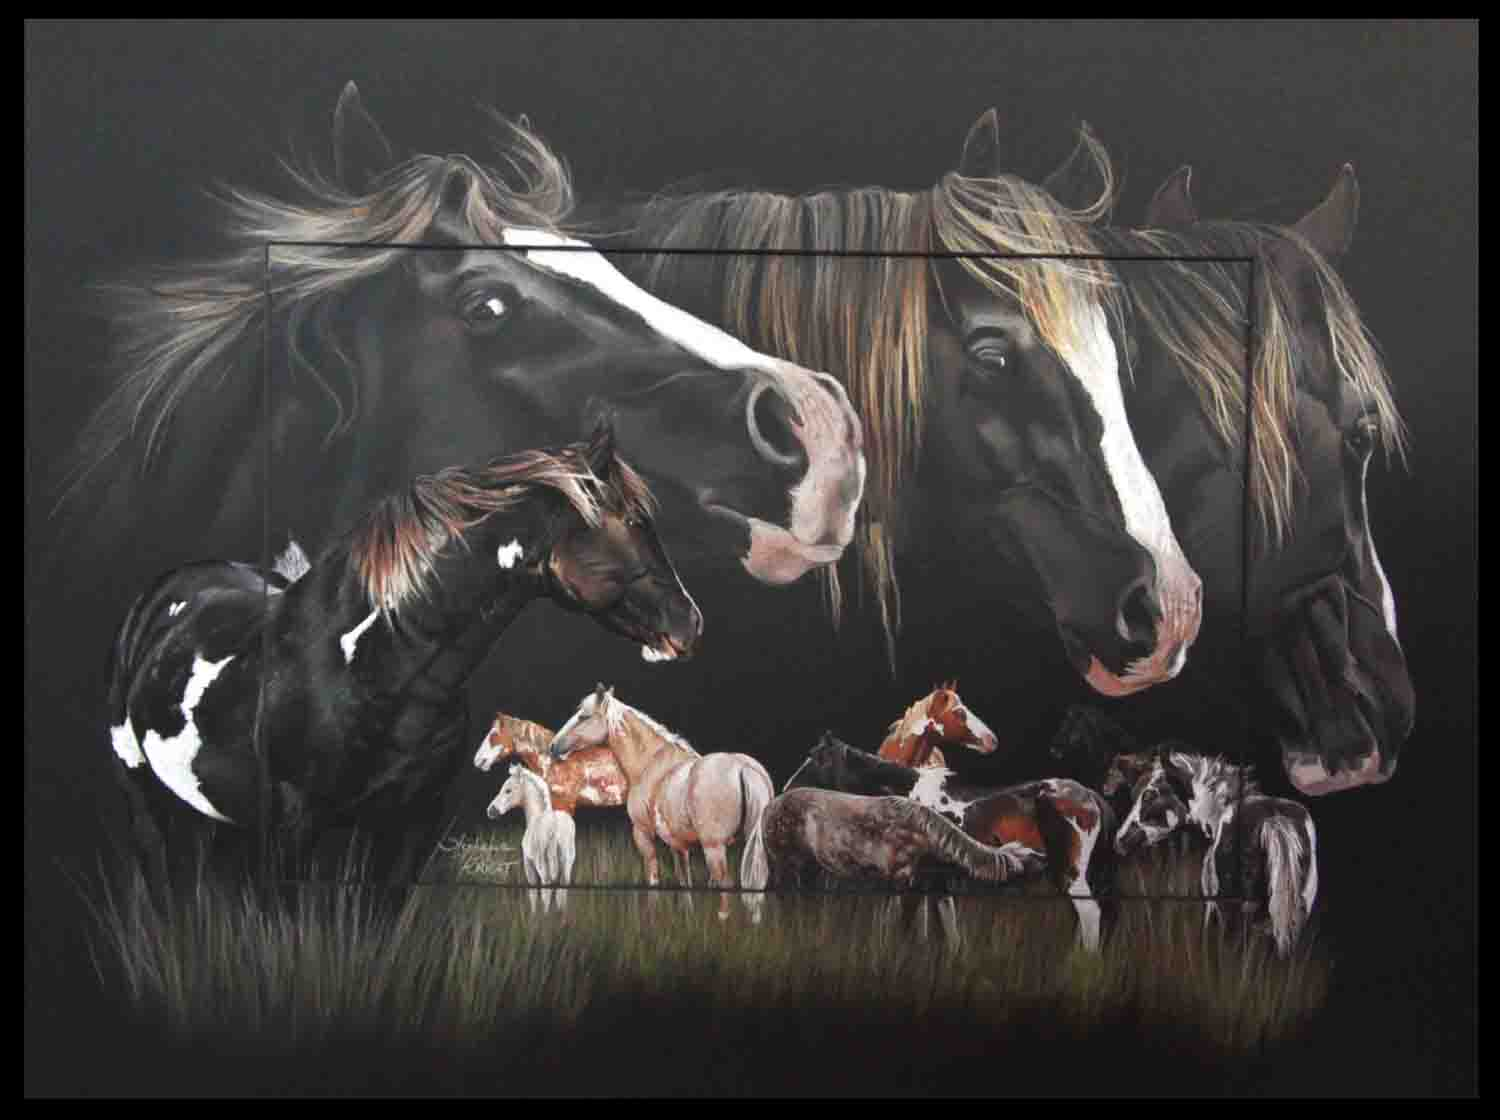 MAJESTY, stallion 1998-2013  - 50x70cm - AV for sale